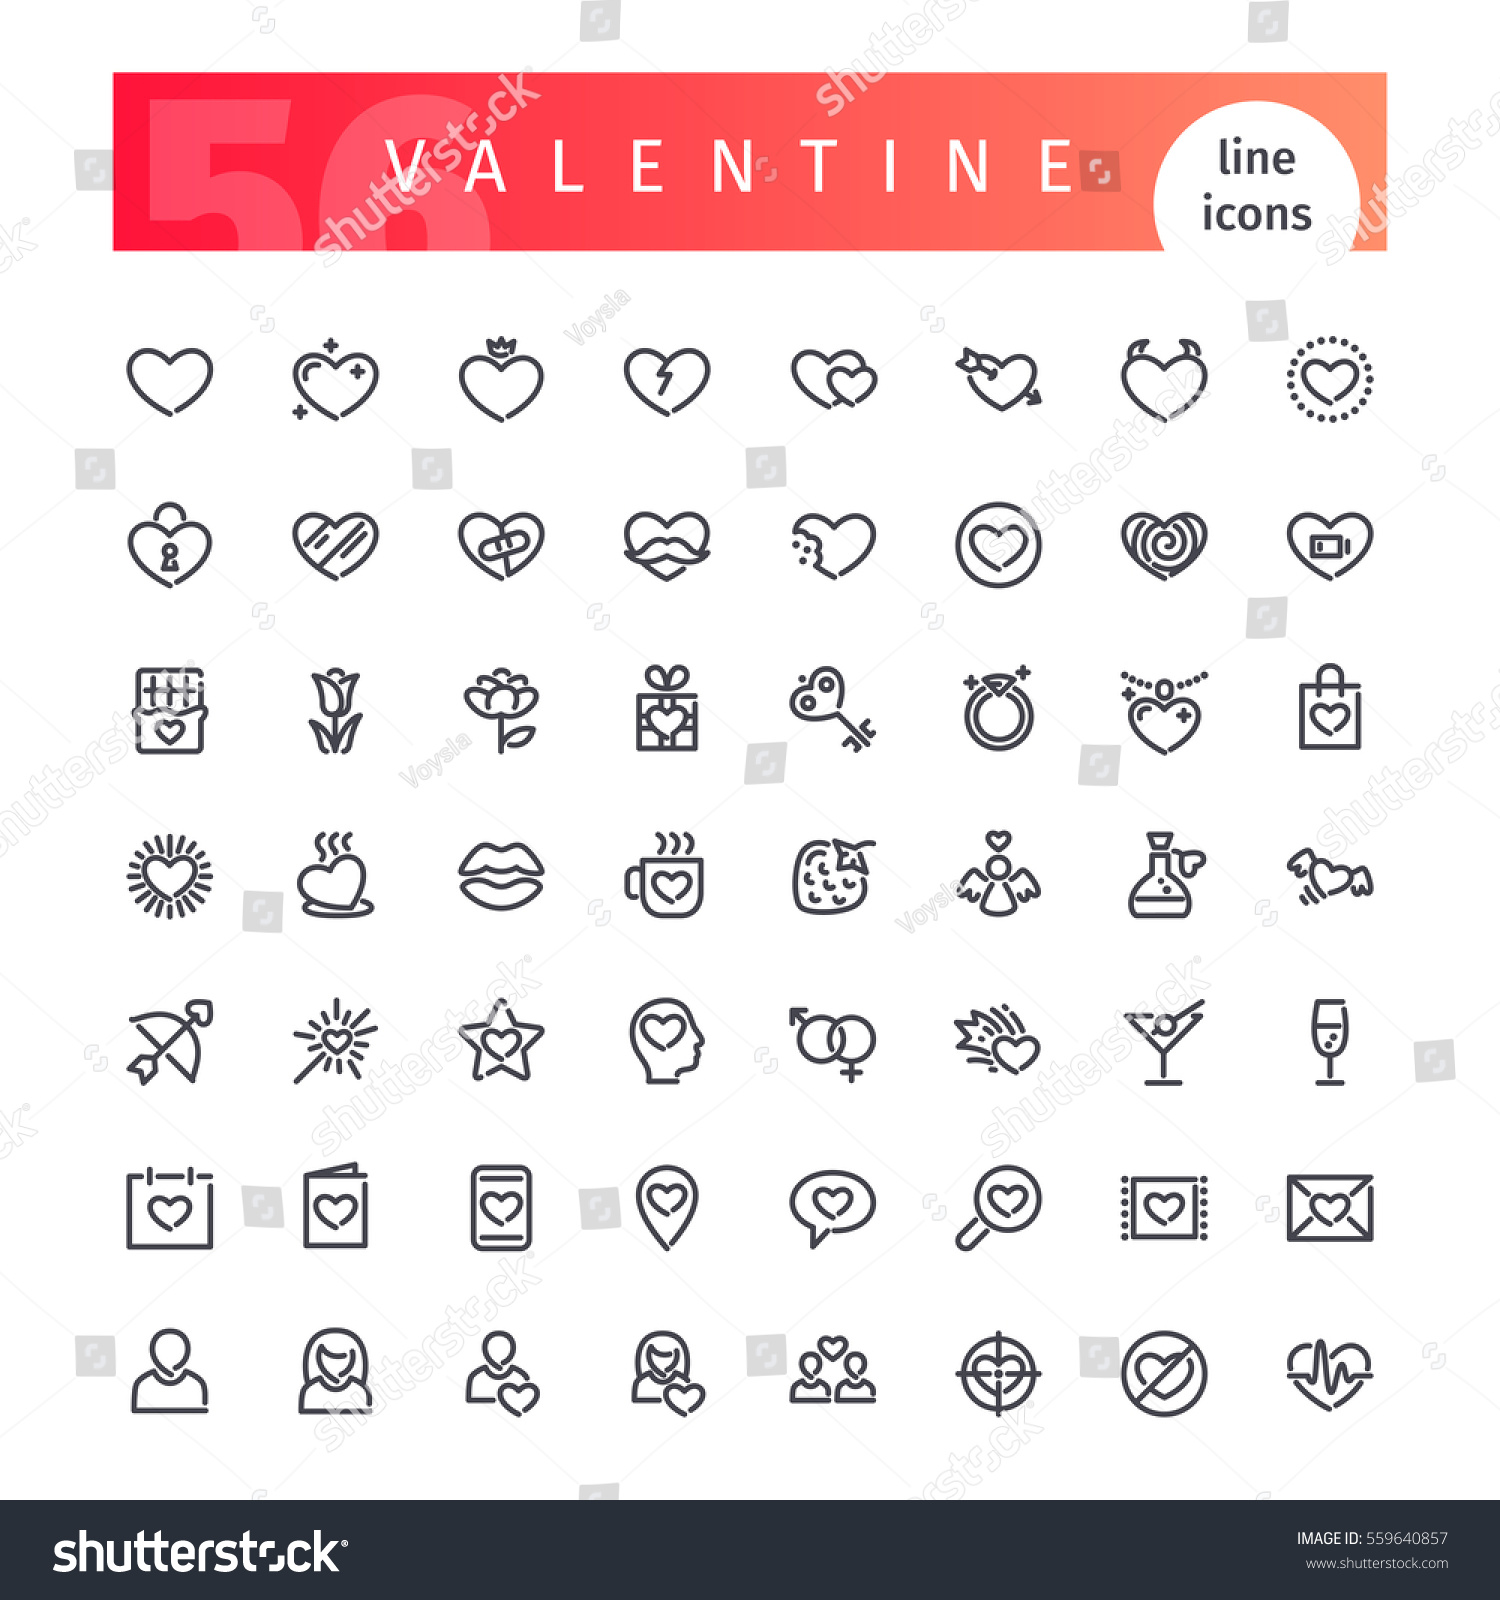 Set Of 56 Valentines Days Line Icons Suitable For Your Romance Projects.  Isolated On White